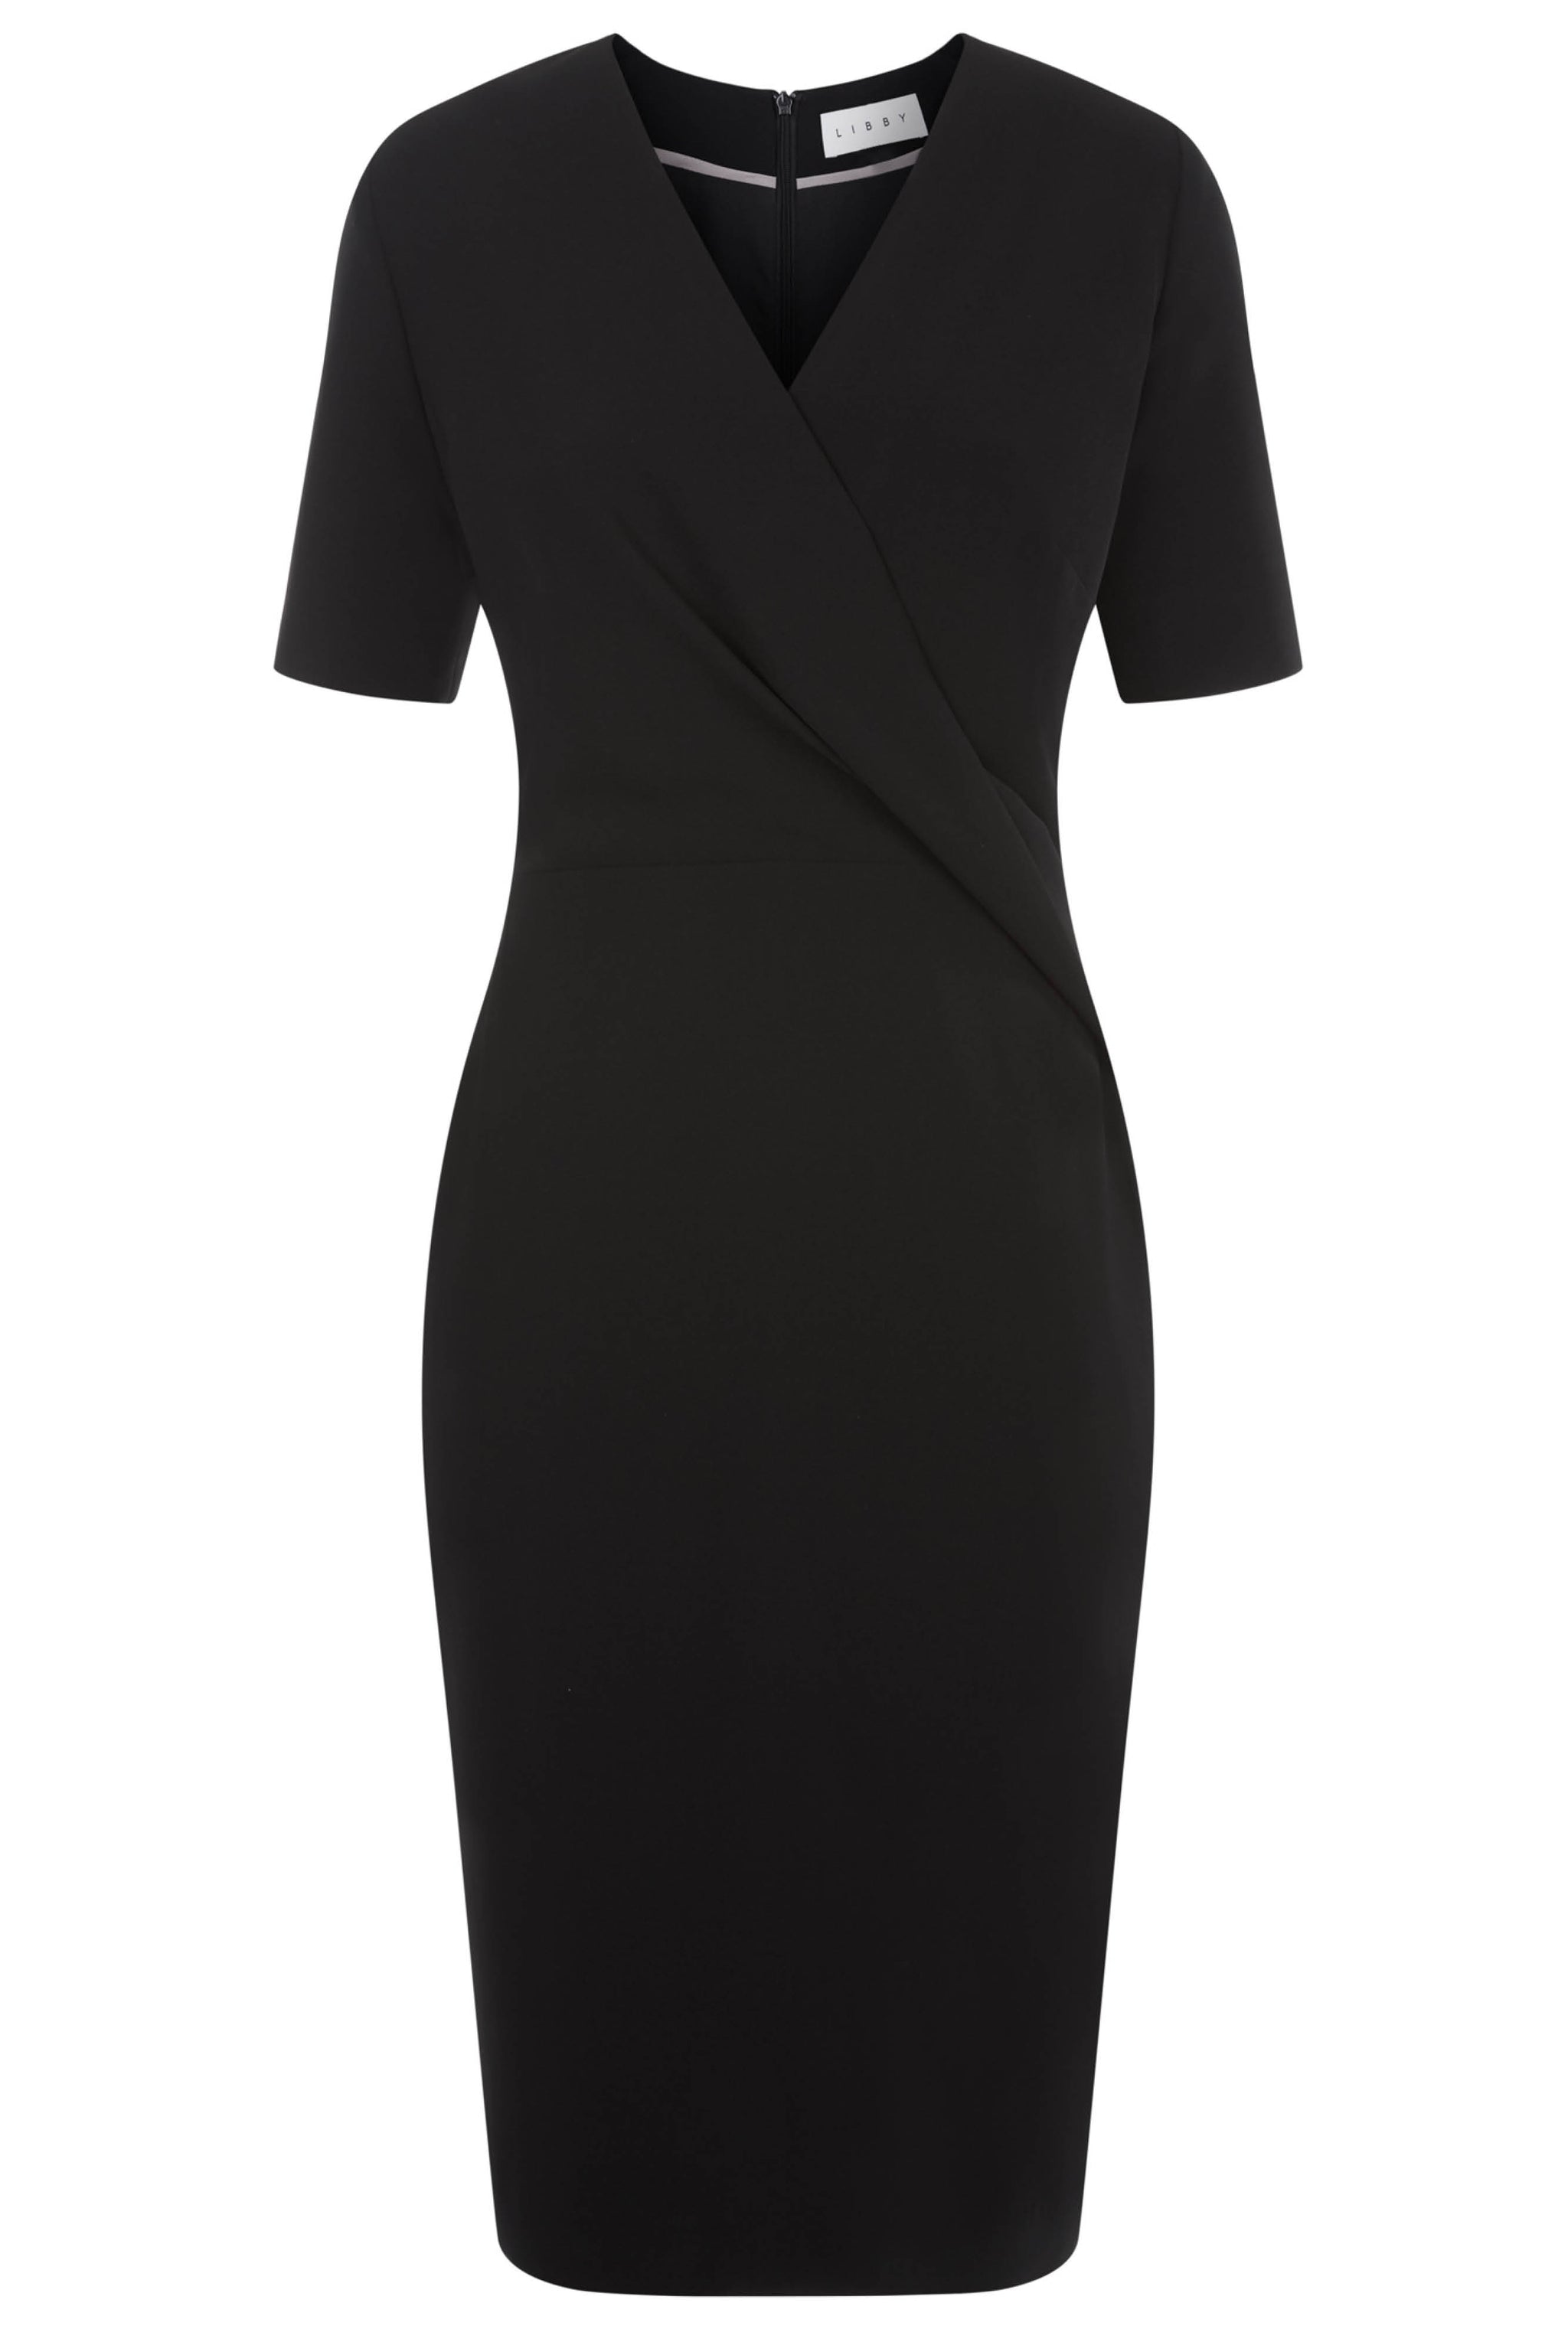 Marlborough Black Dress